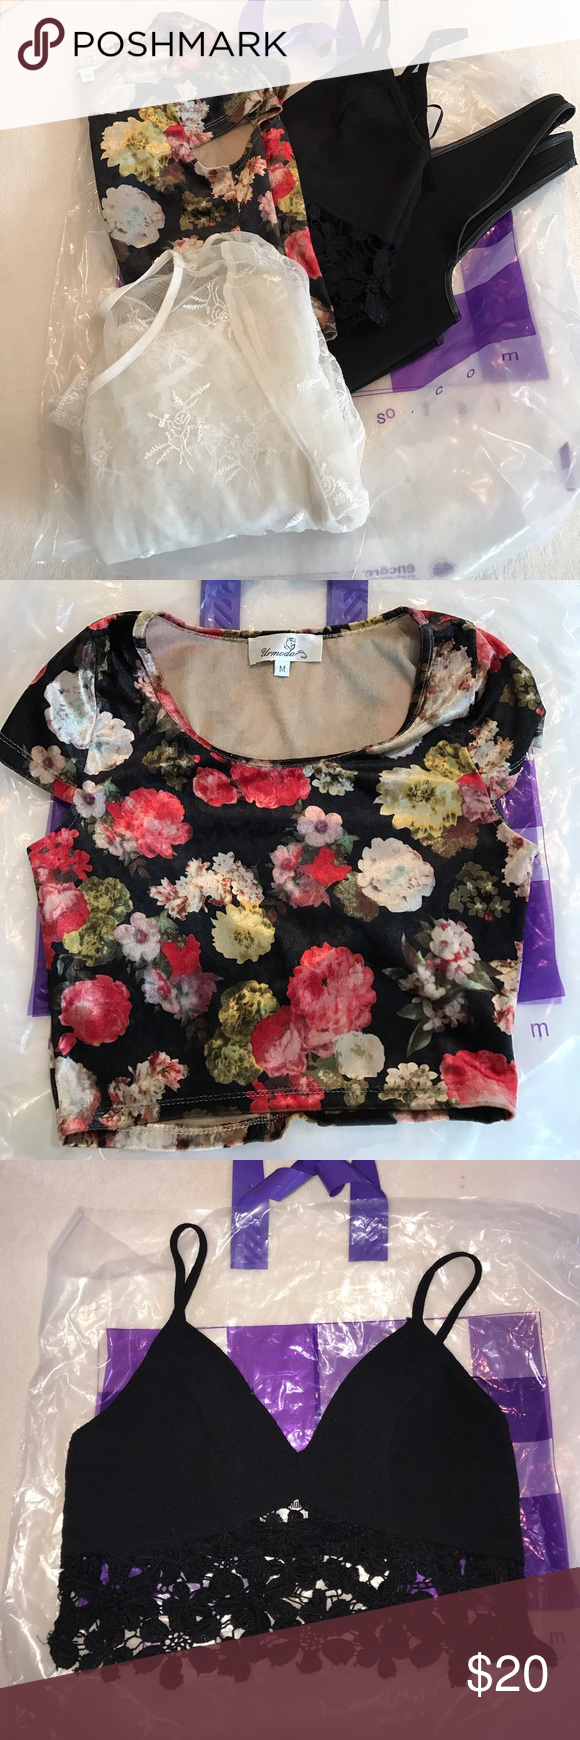 LF tops LF tops all in good condition, all for sale, price includes all. LF Tops Crop Tops